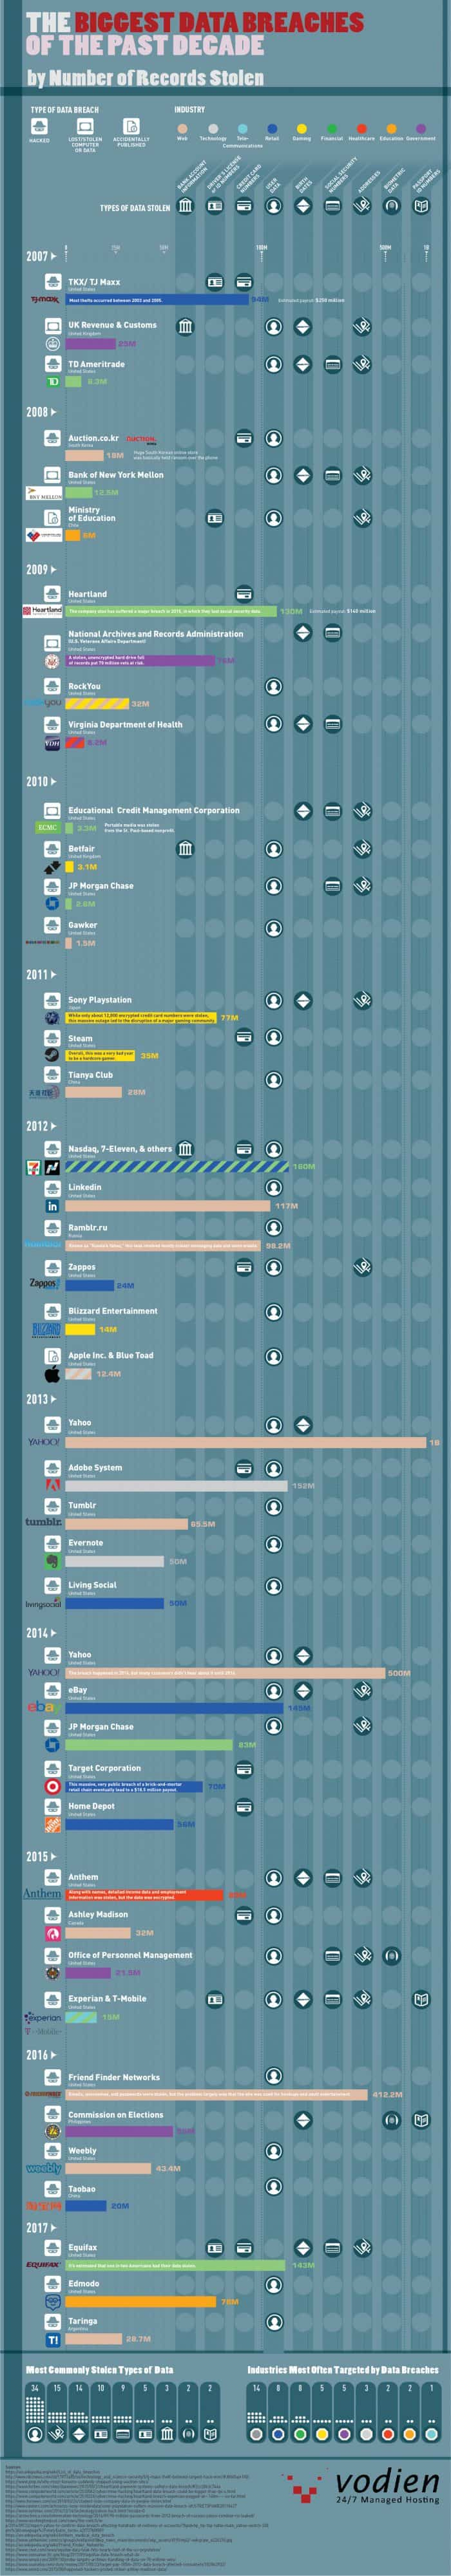 Infographic for the Biggest Data Hacks of the Last Decade